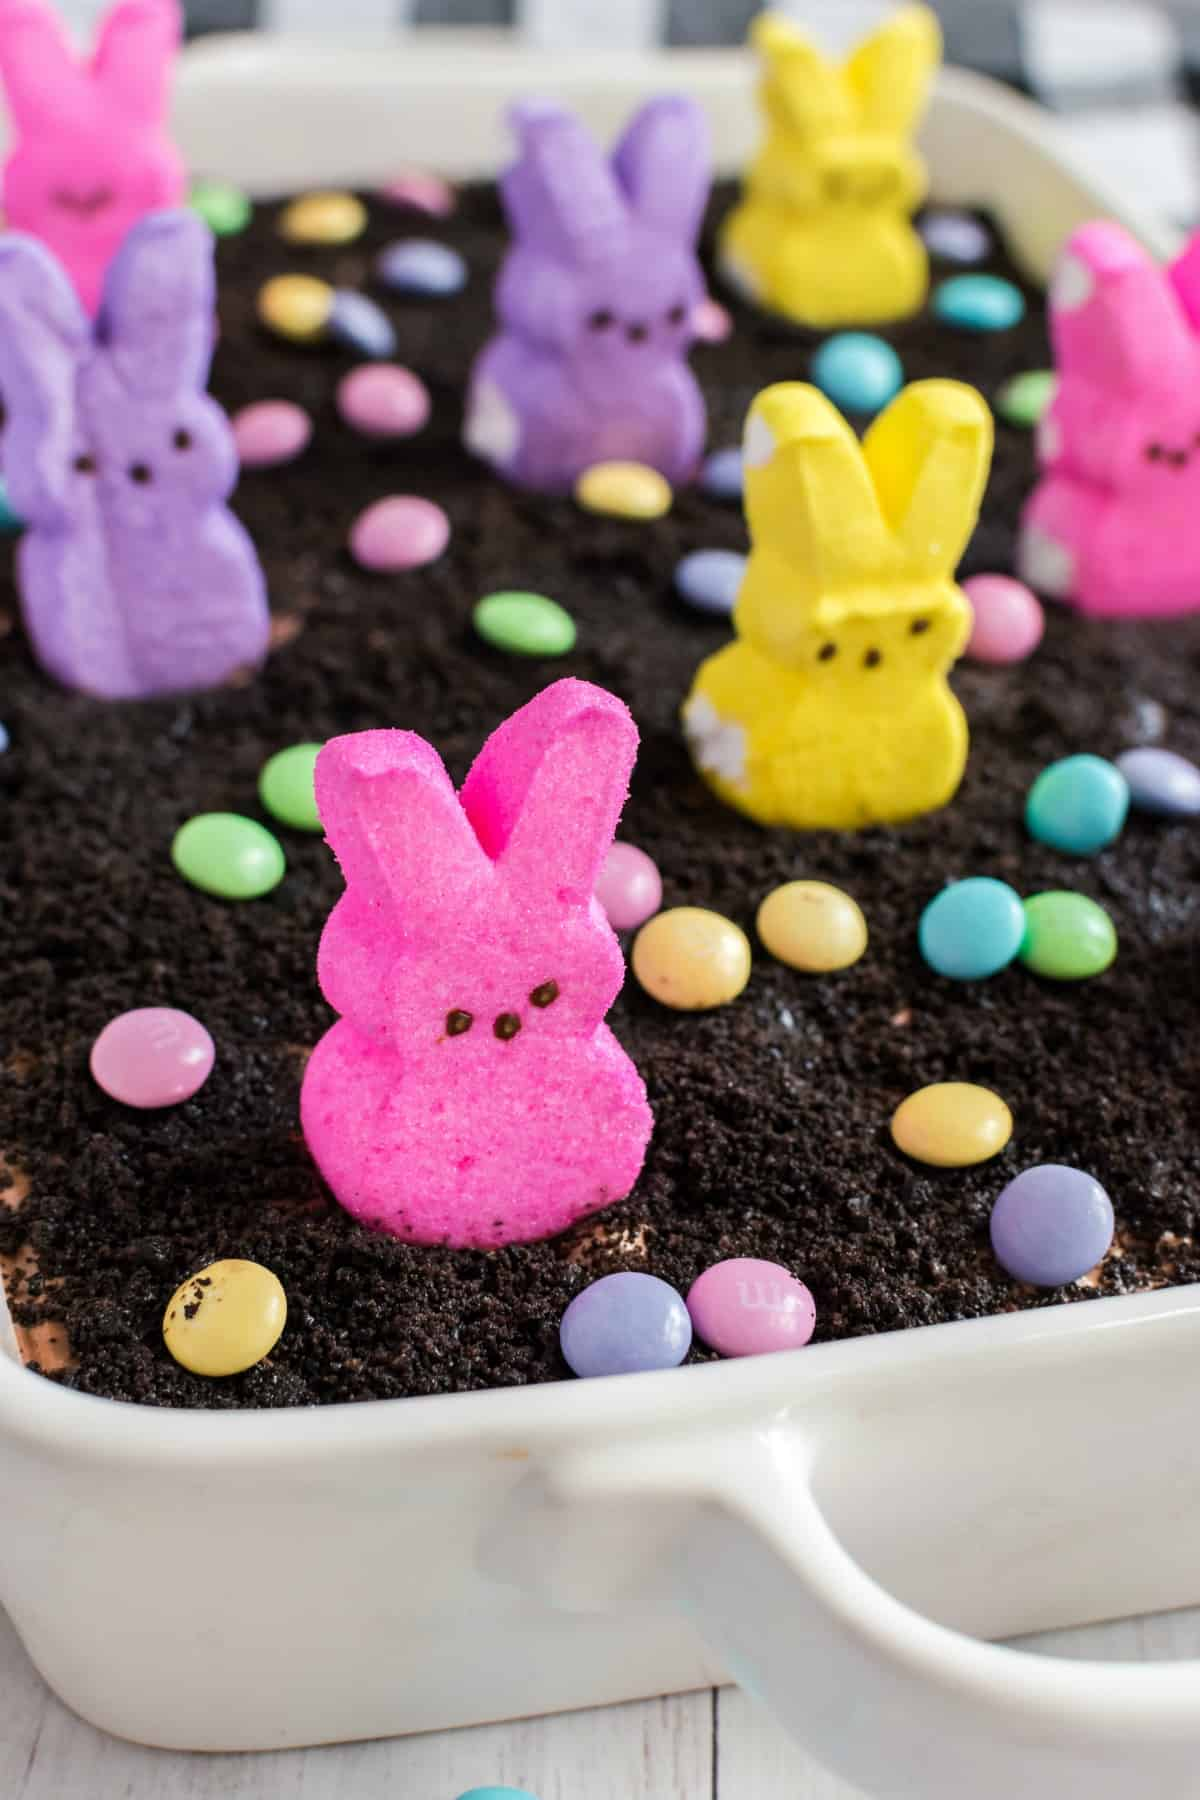 Easter dirt pudding cake topped with pasted M&M's and PEEPS marshmallows.